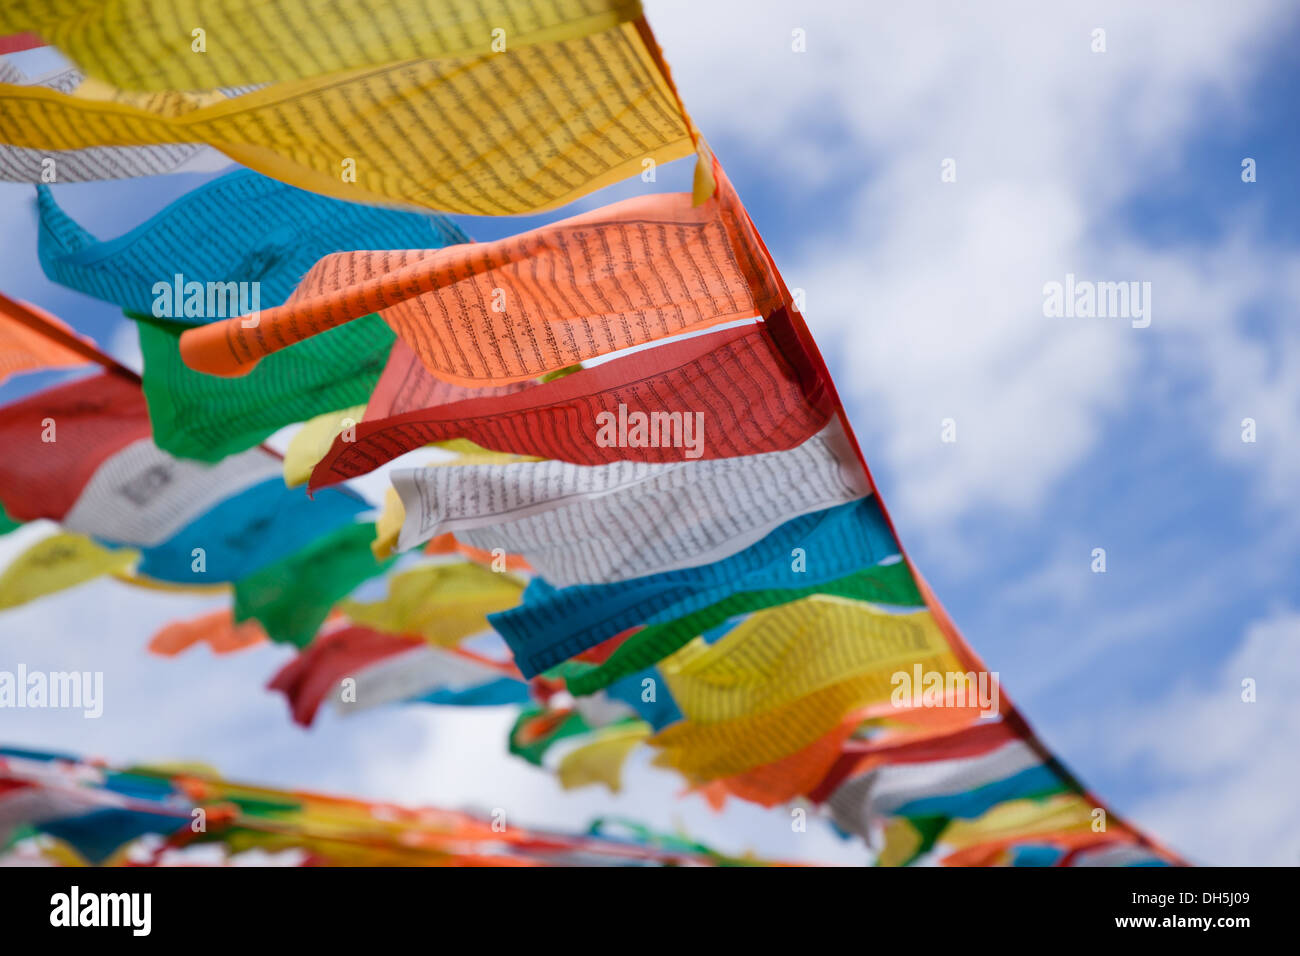 Prayer Flags in Litang, Sichuan China - Stock Image